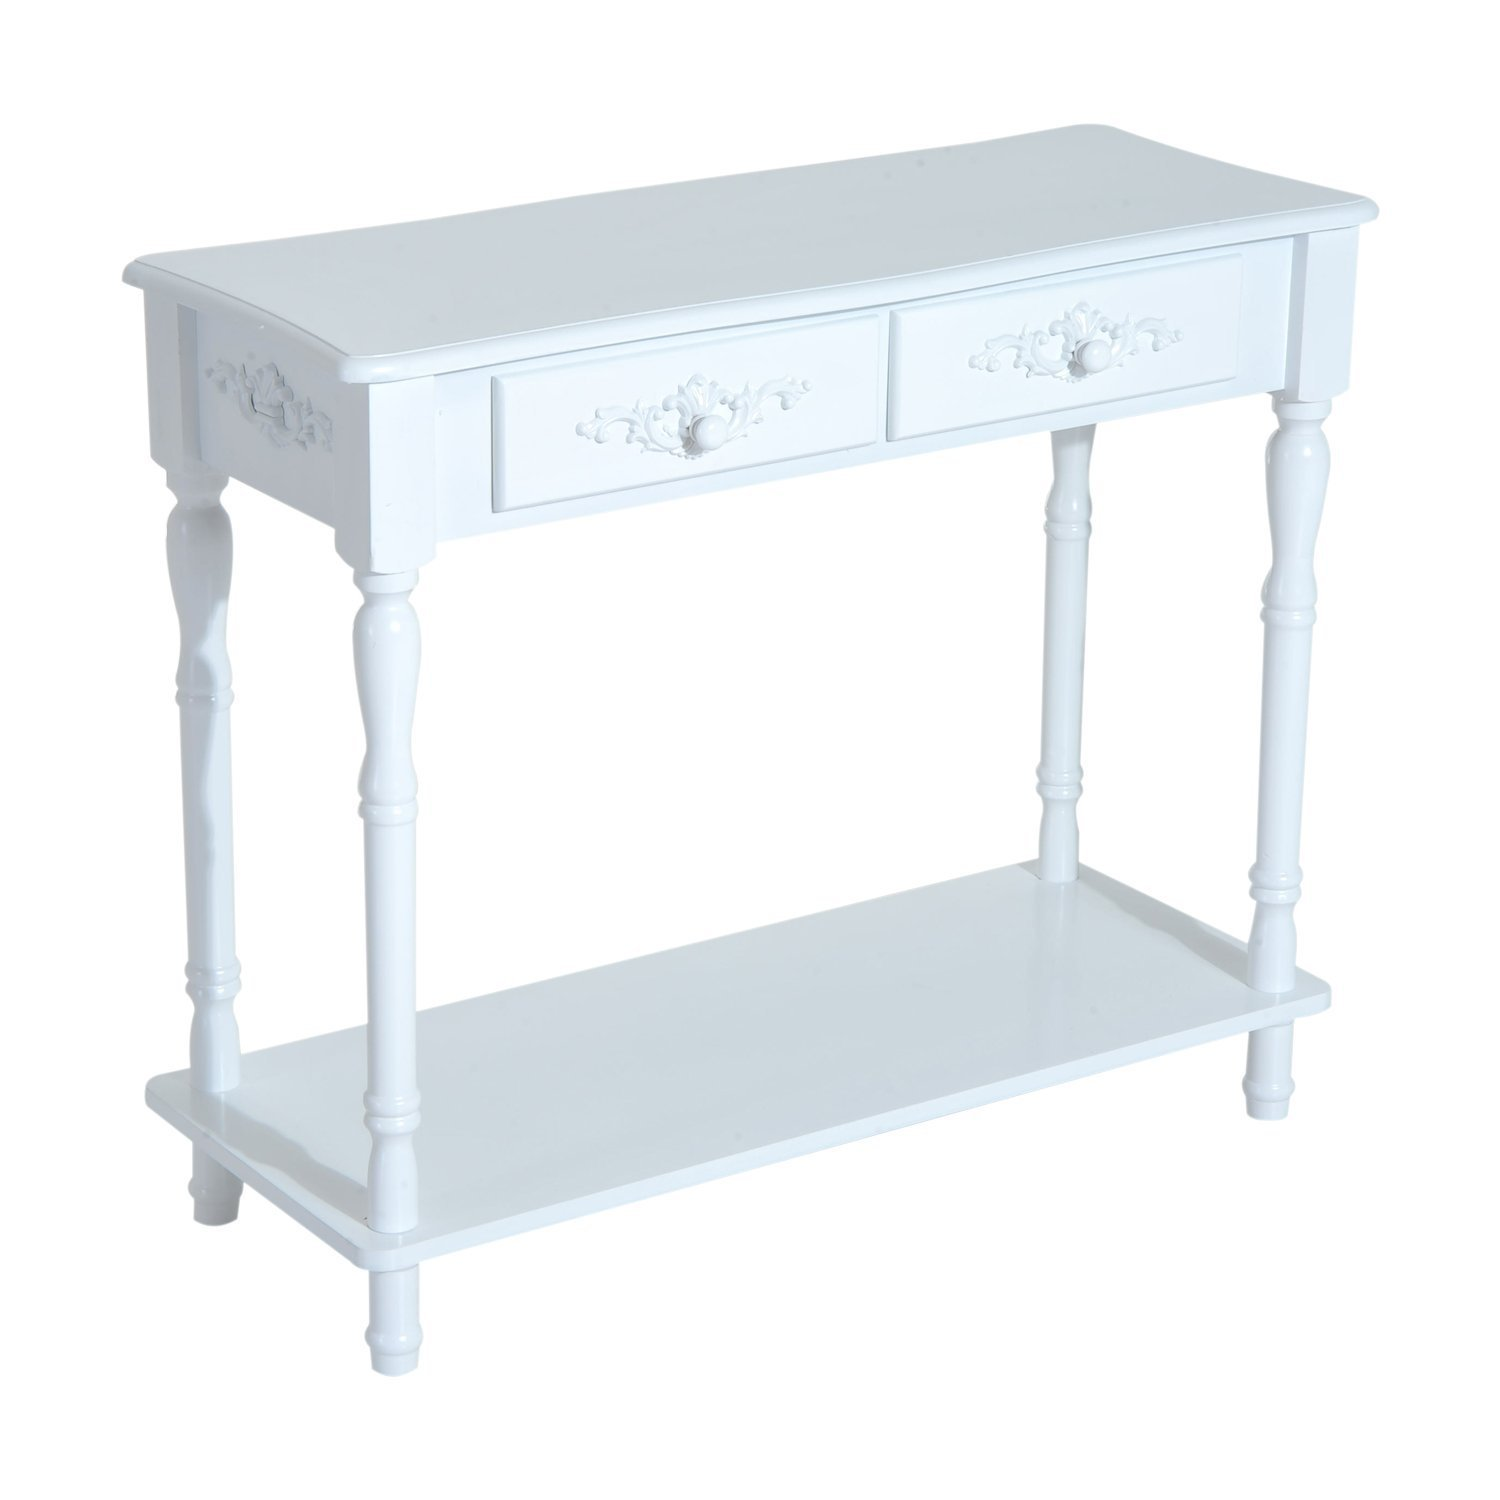 HOMCOM 28 H Modern Country 2 Drawer Wooden Entryway Console Table – Glossy White